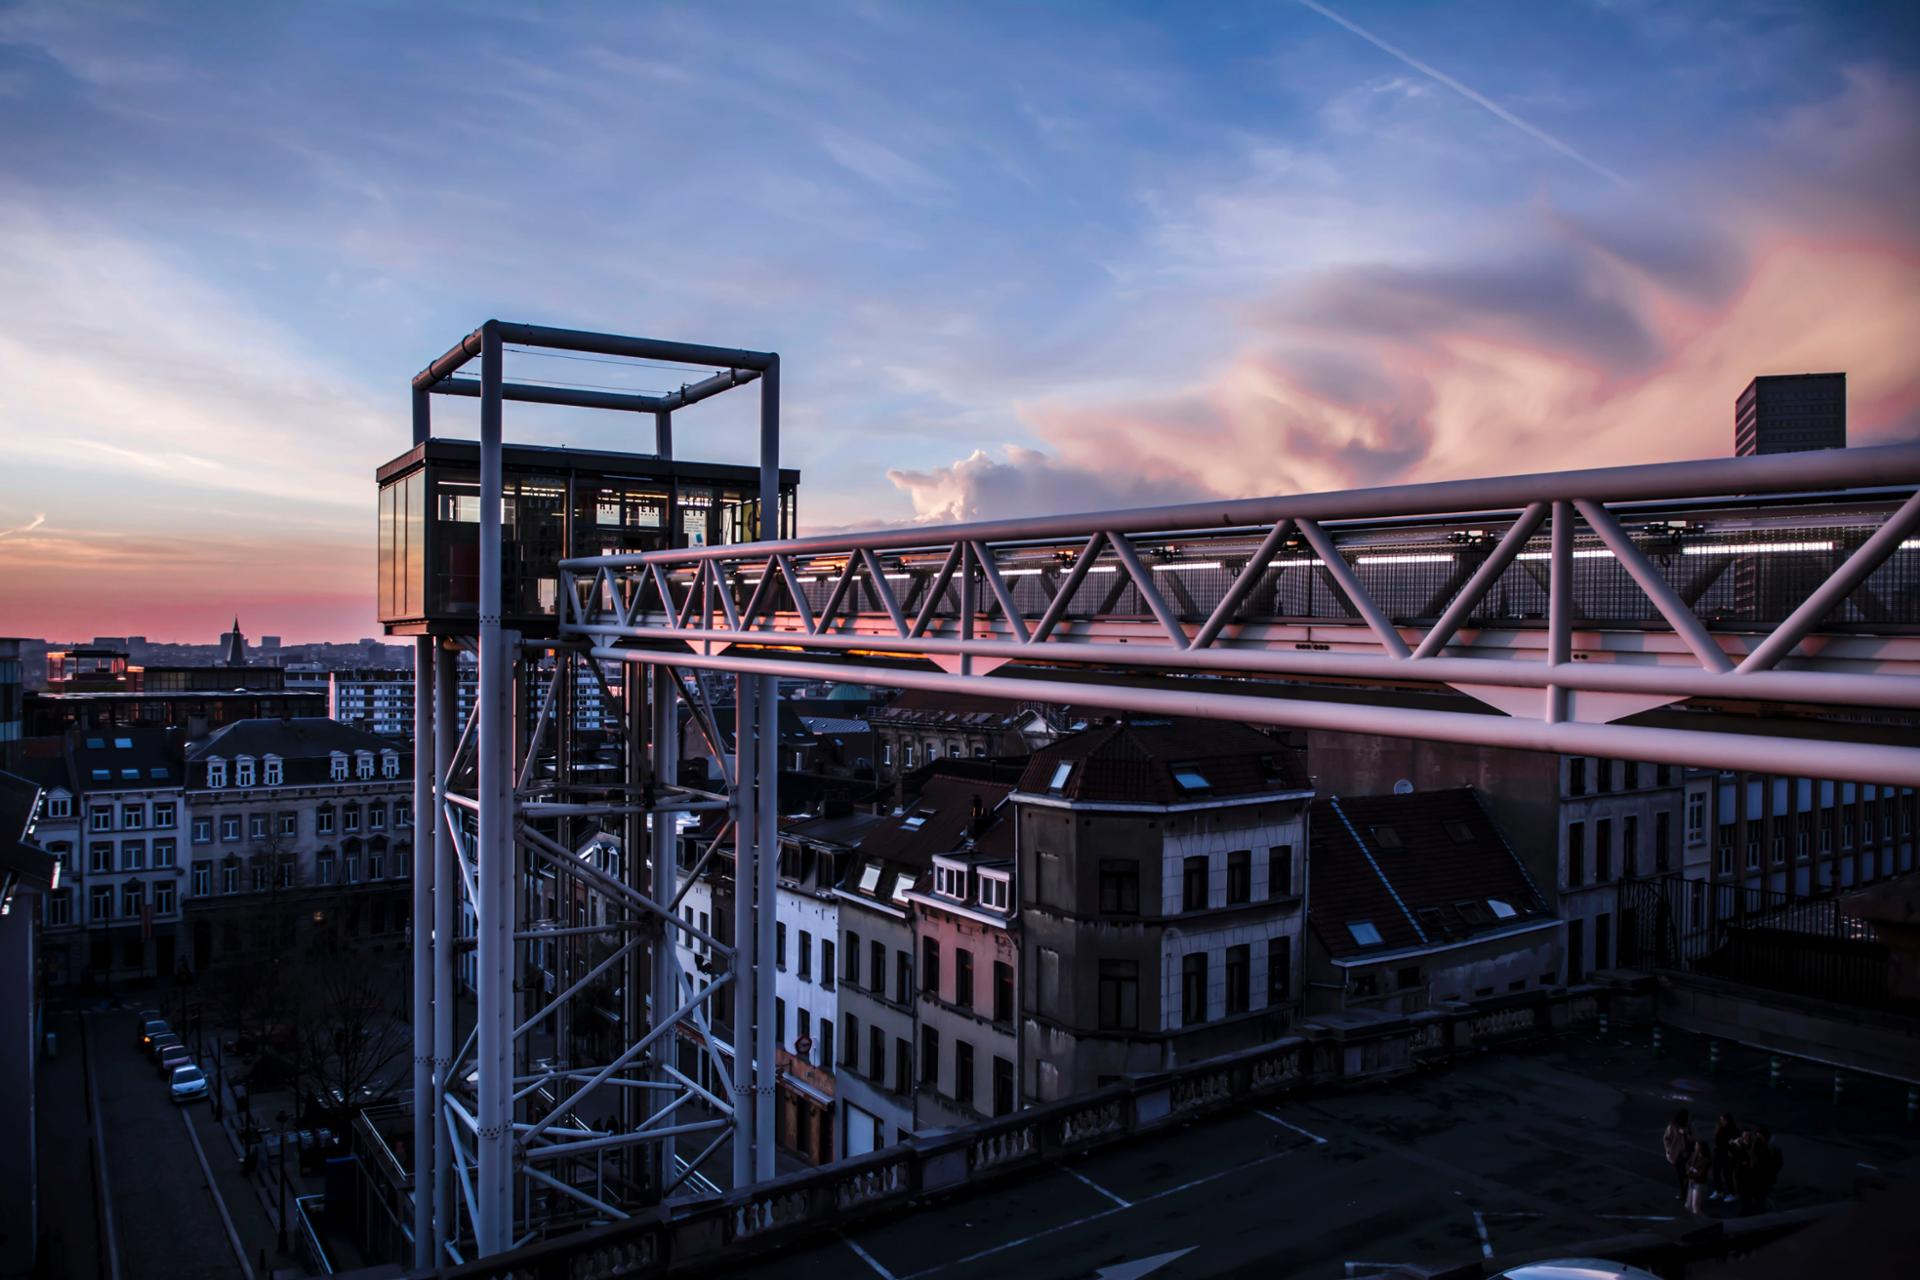 Brussels's sunset